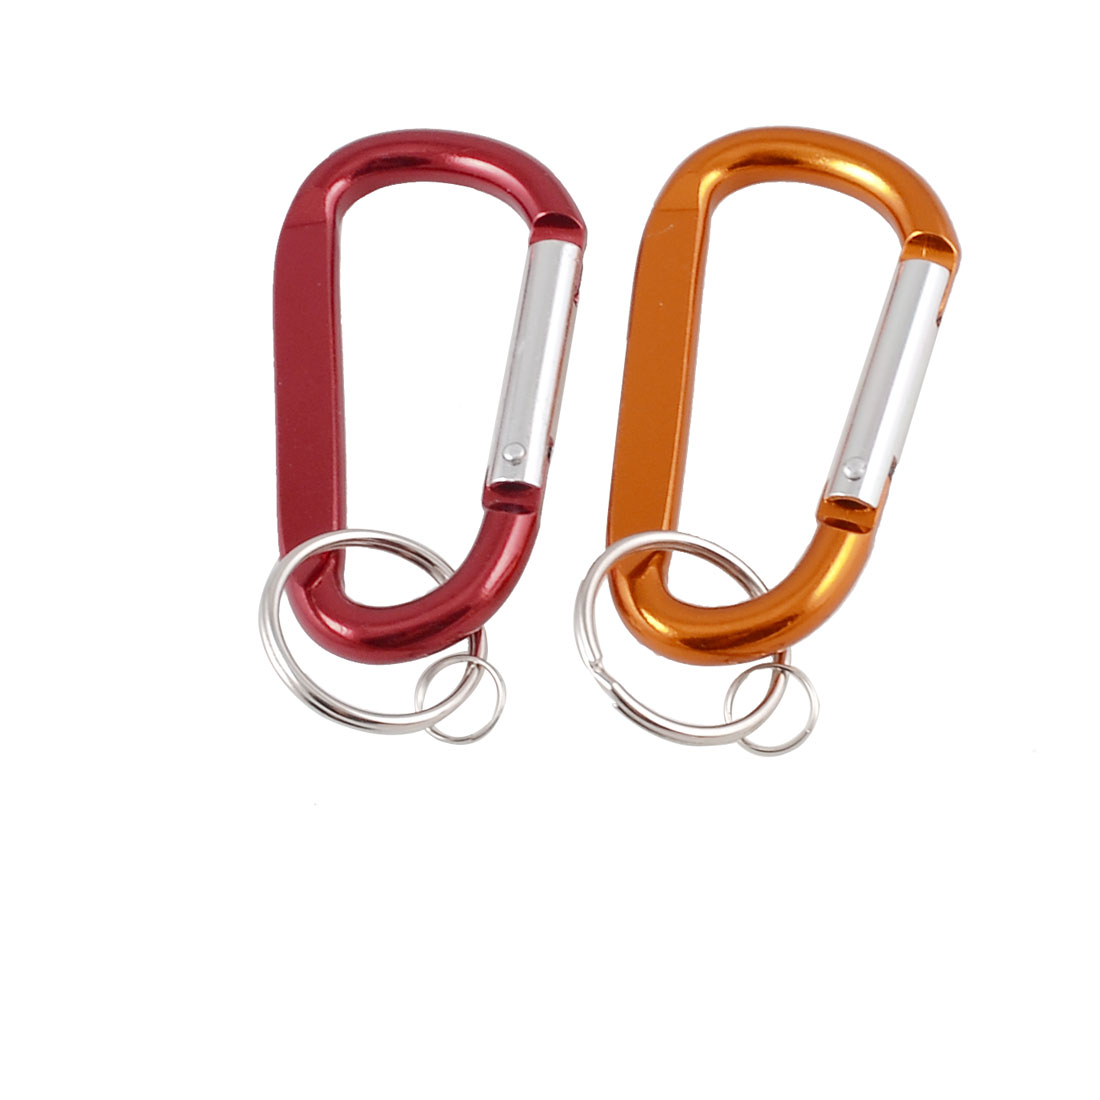 2 Pcs Red Orange Aluminum Alloy D Shape Lockable Carabiner w Keyring